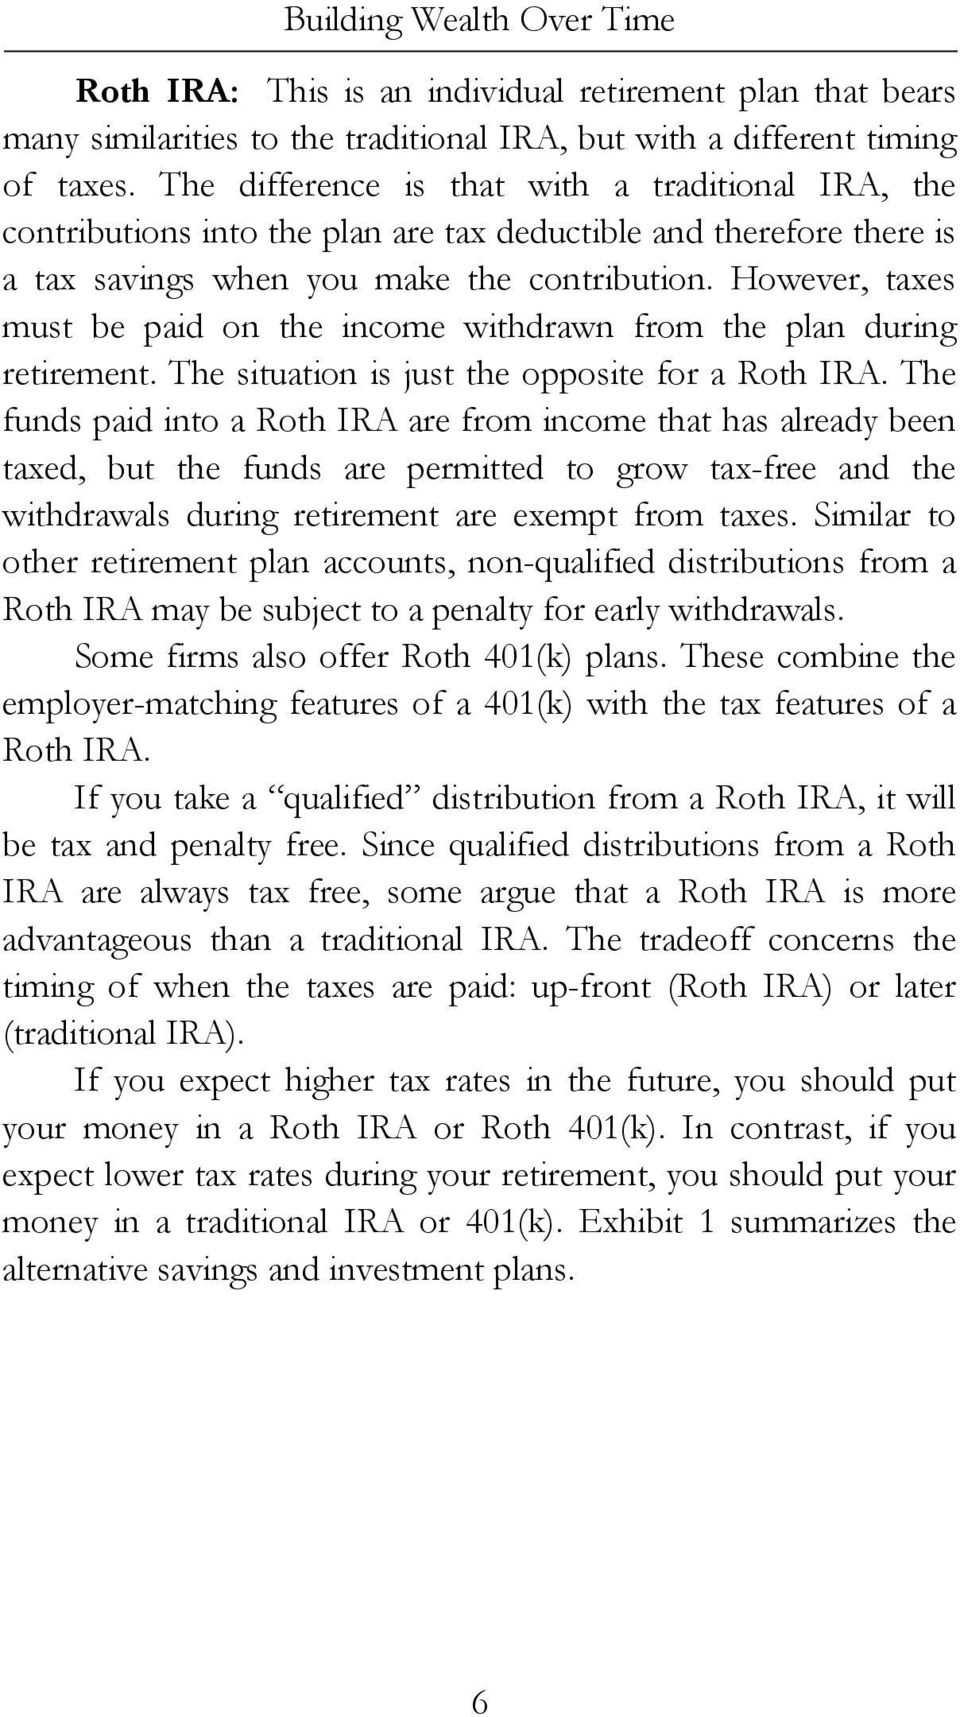 However, taxes must be paid on the income withdrawn from the plan during retirement. The situation is just the opposite for a Roth IRA.